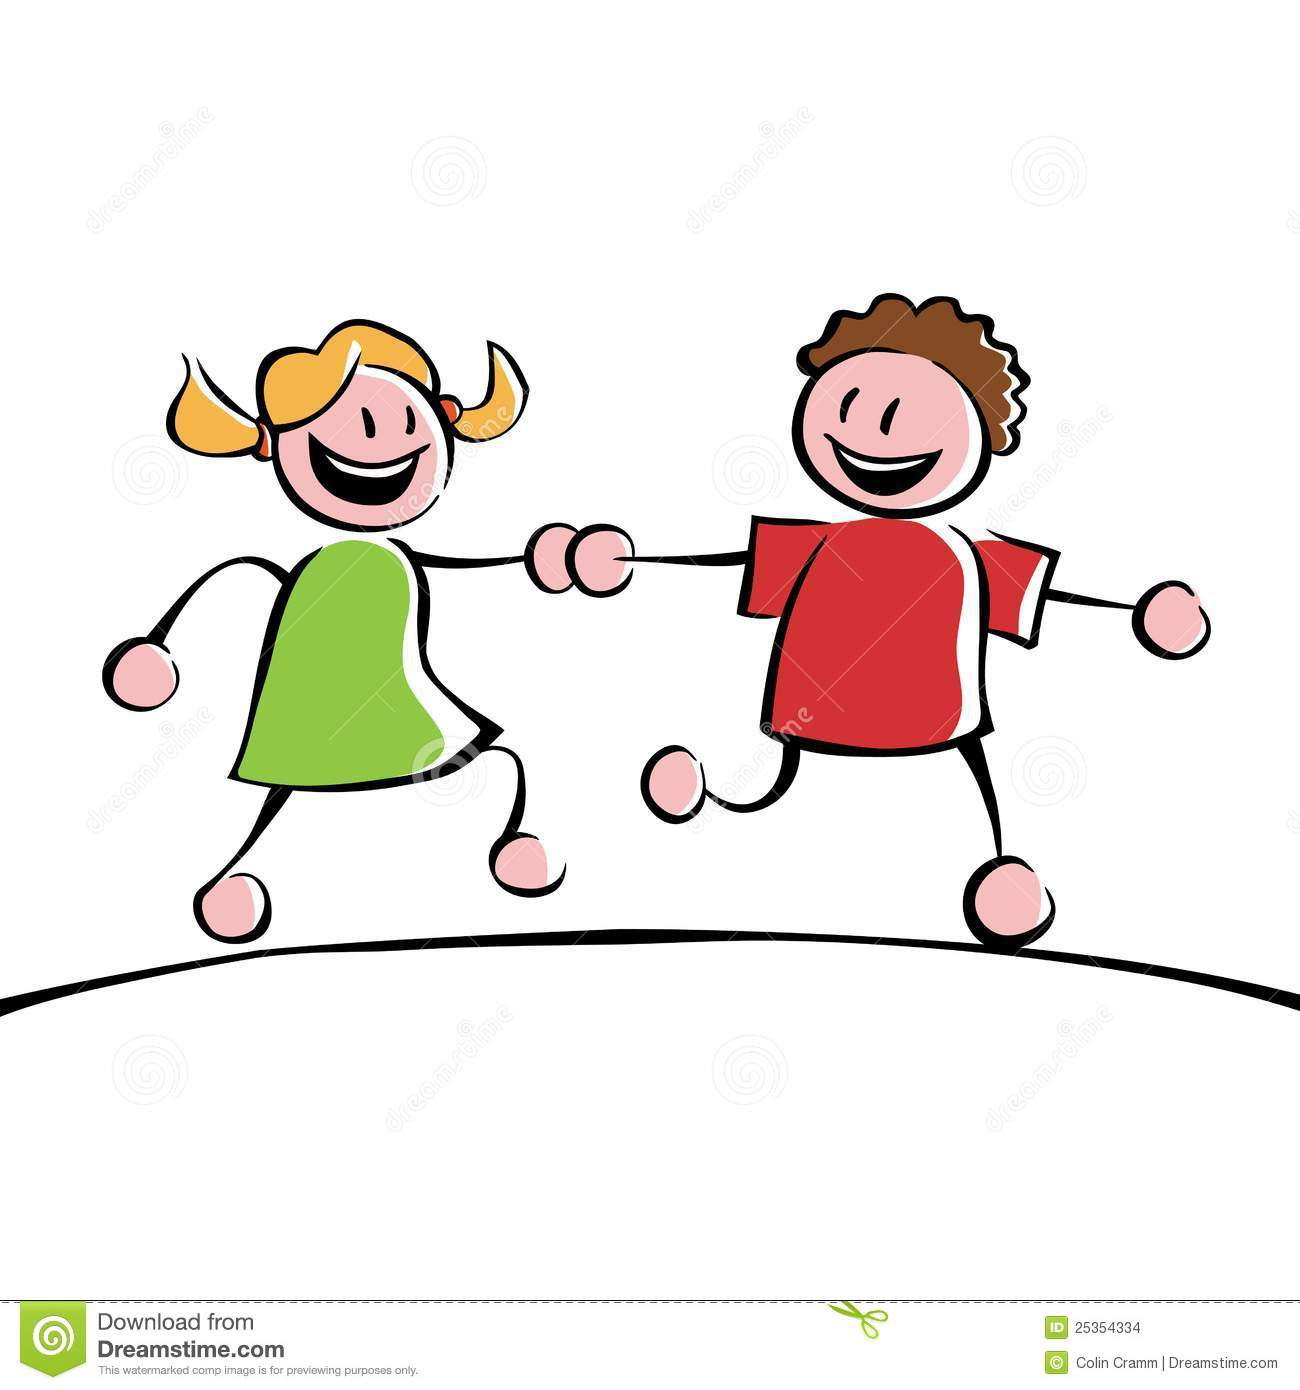 Friends Holding Hands Clip Art | Clipart Panda - Free ...